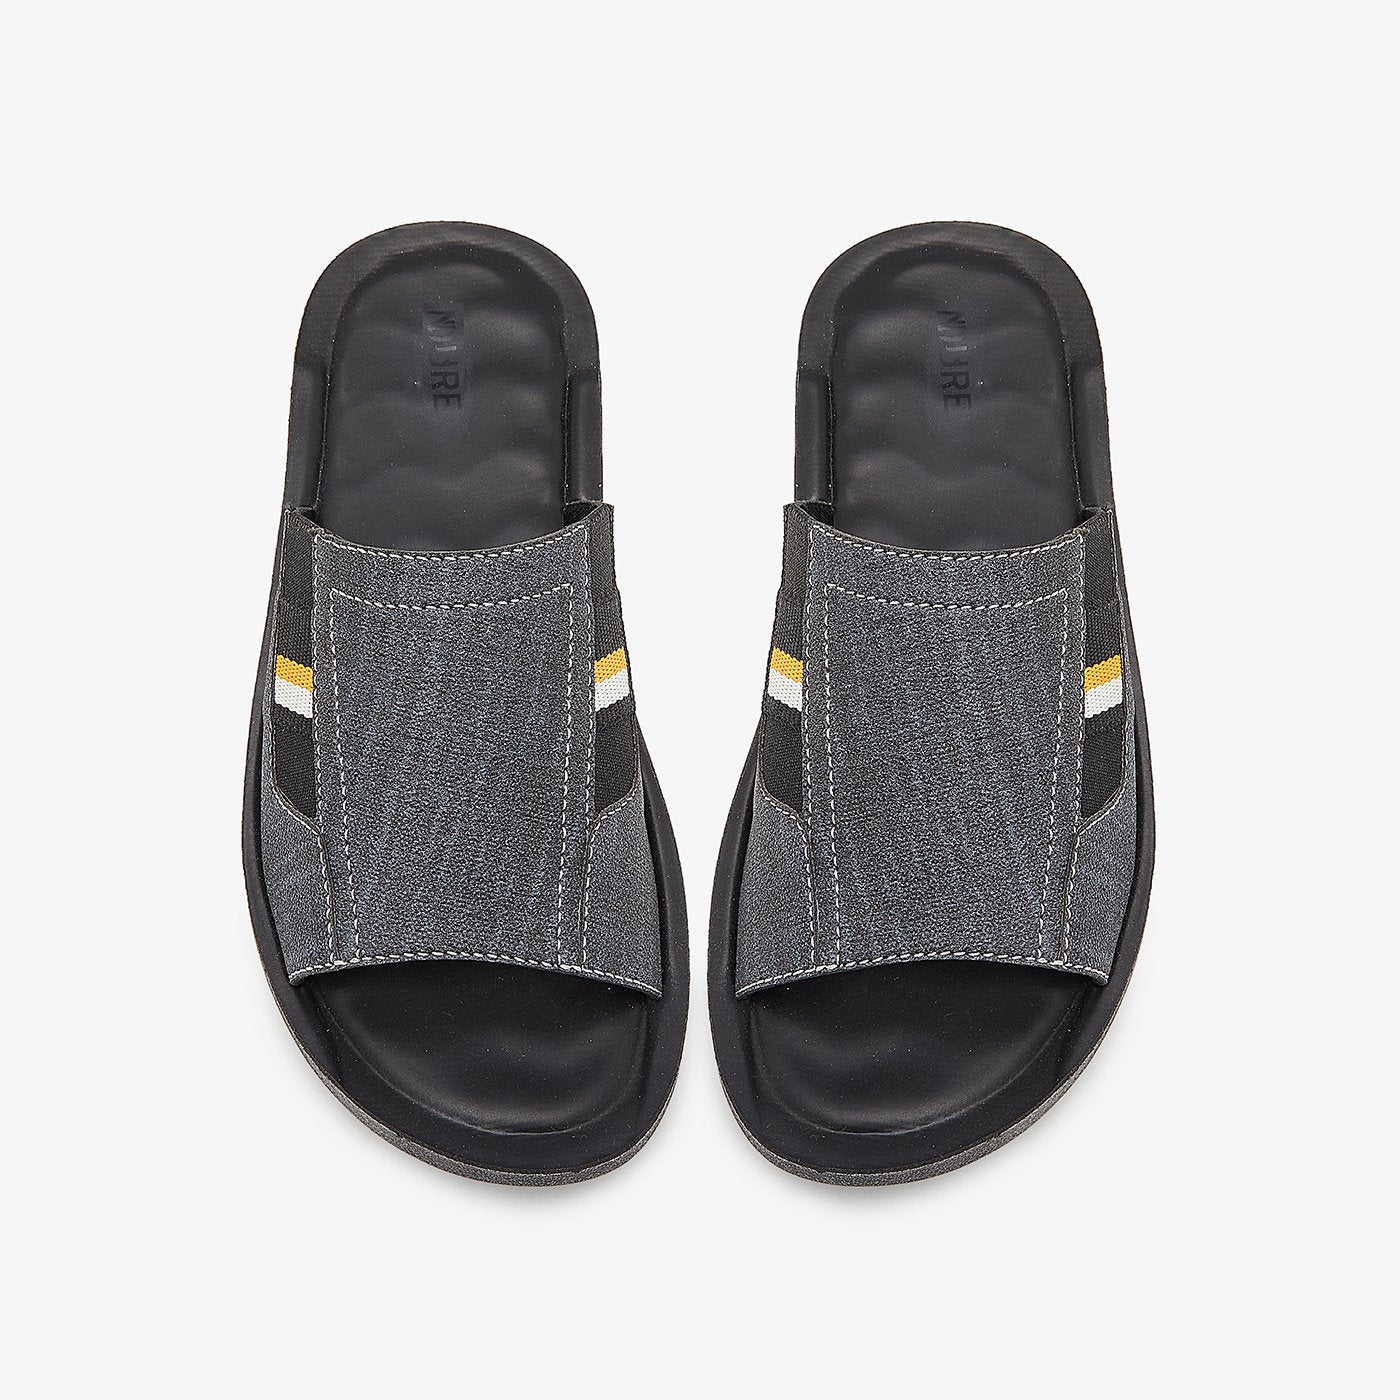 Classy Chappals for Boys